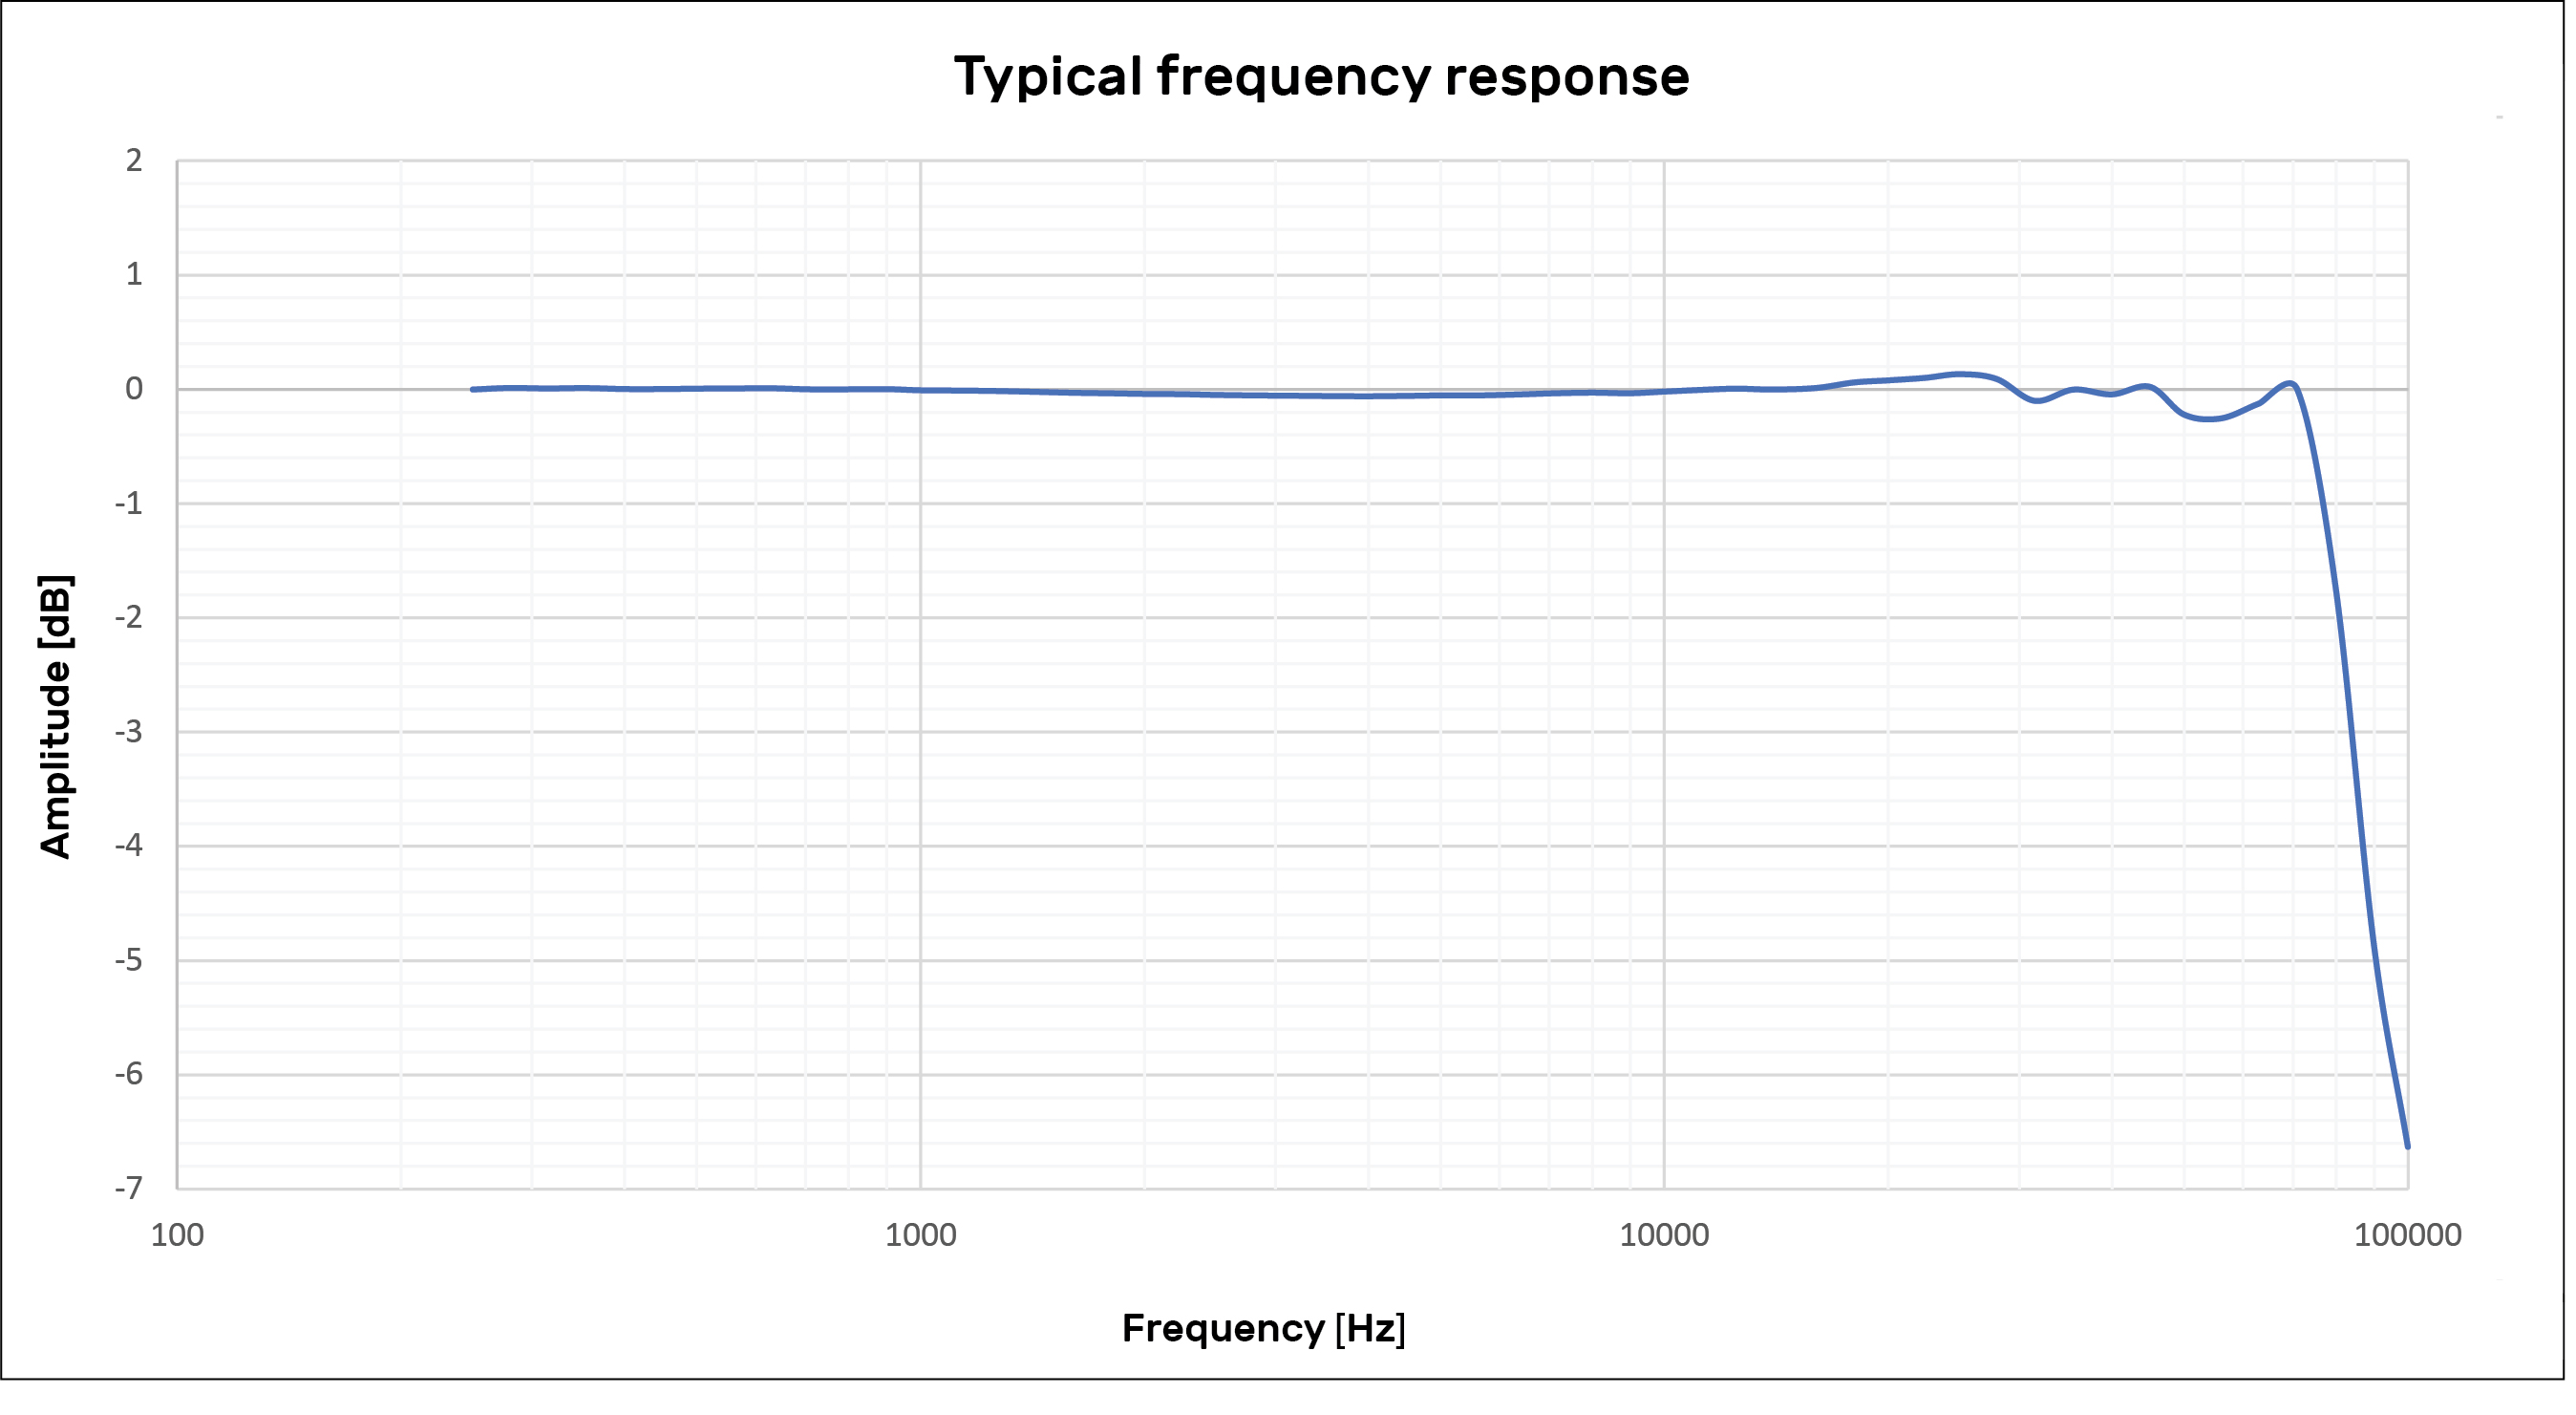 Frequency curve typical 48LX ny